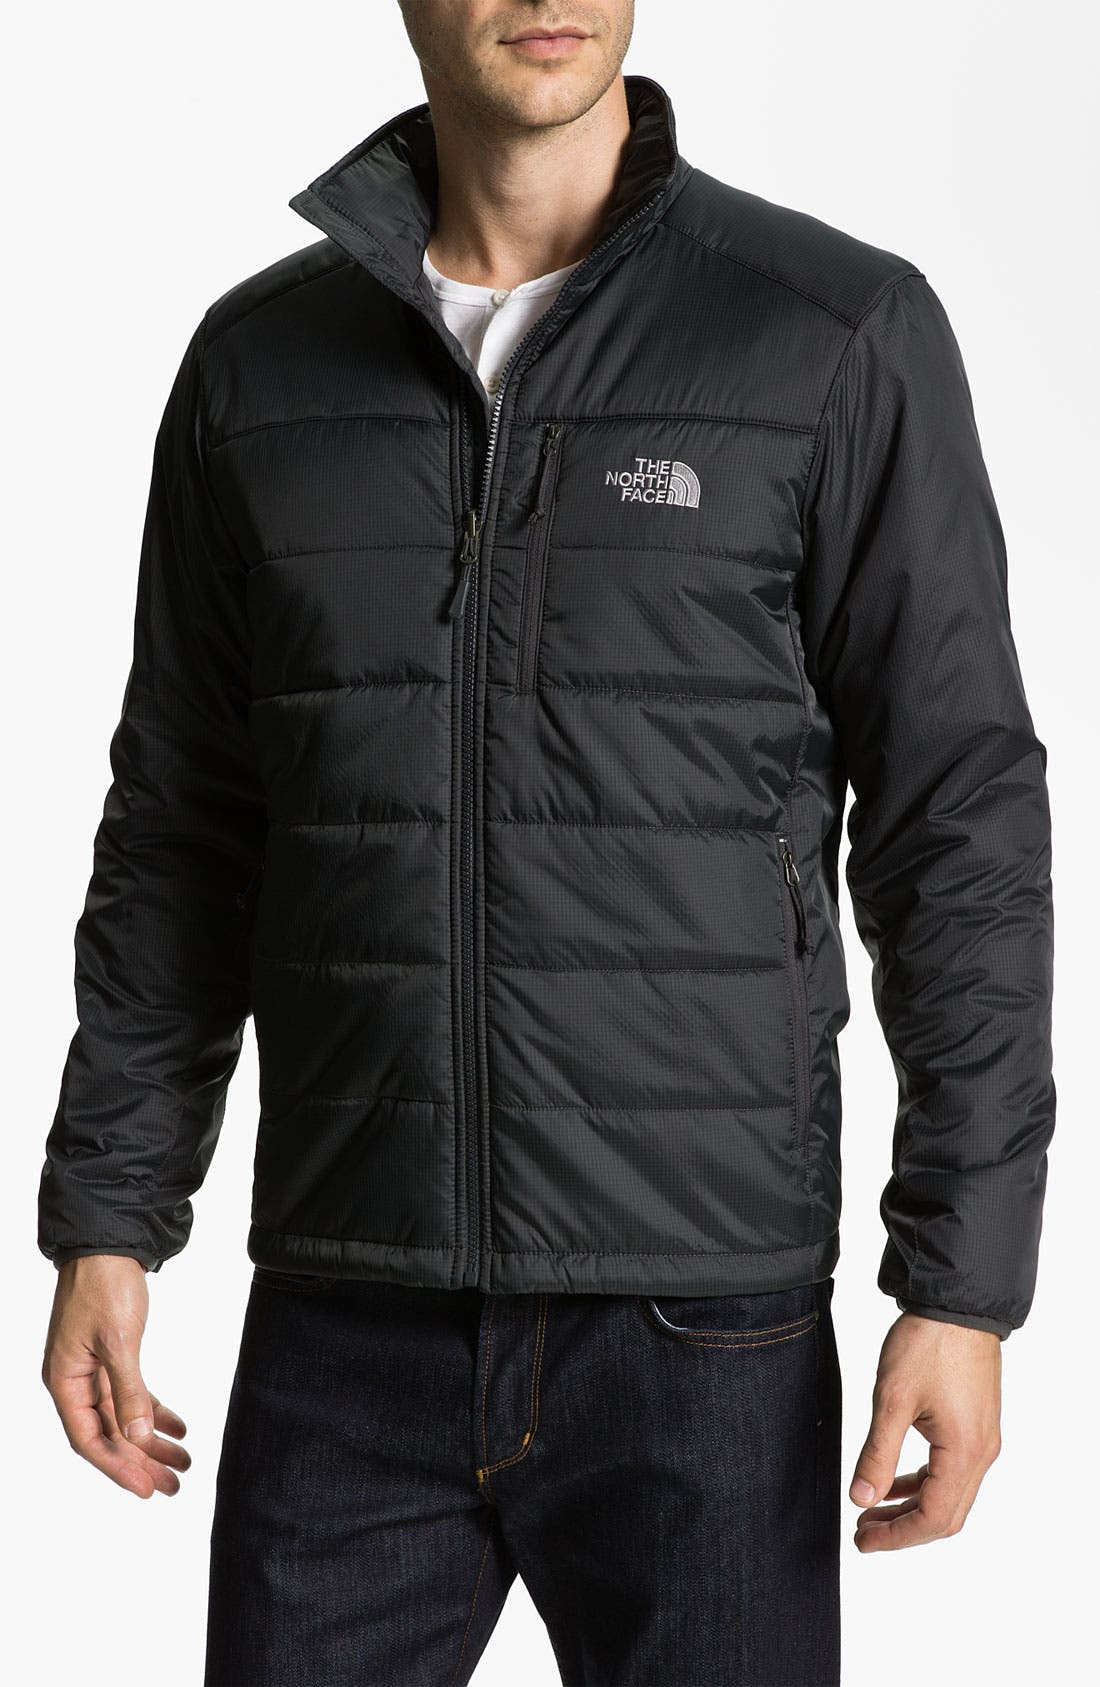 Alternate Image 1 Selected - The North Face 'Redpoint' Jacket